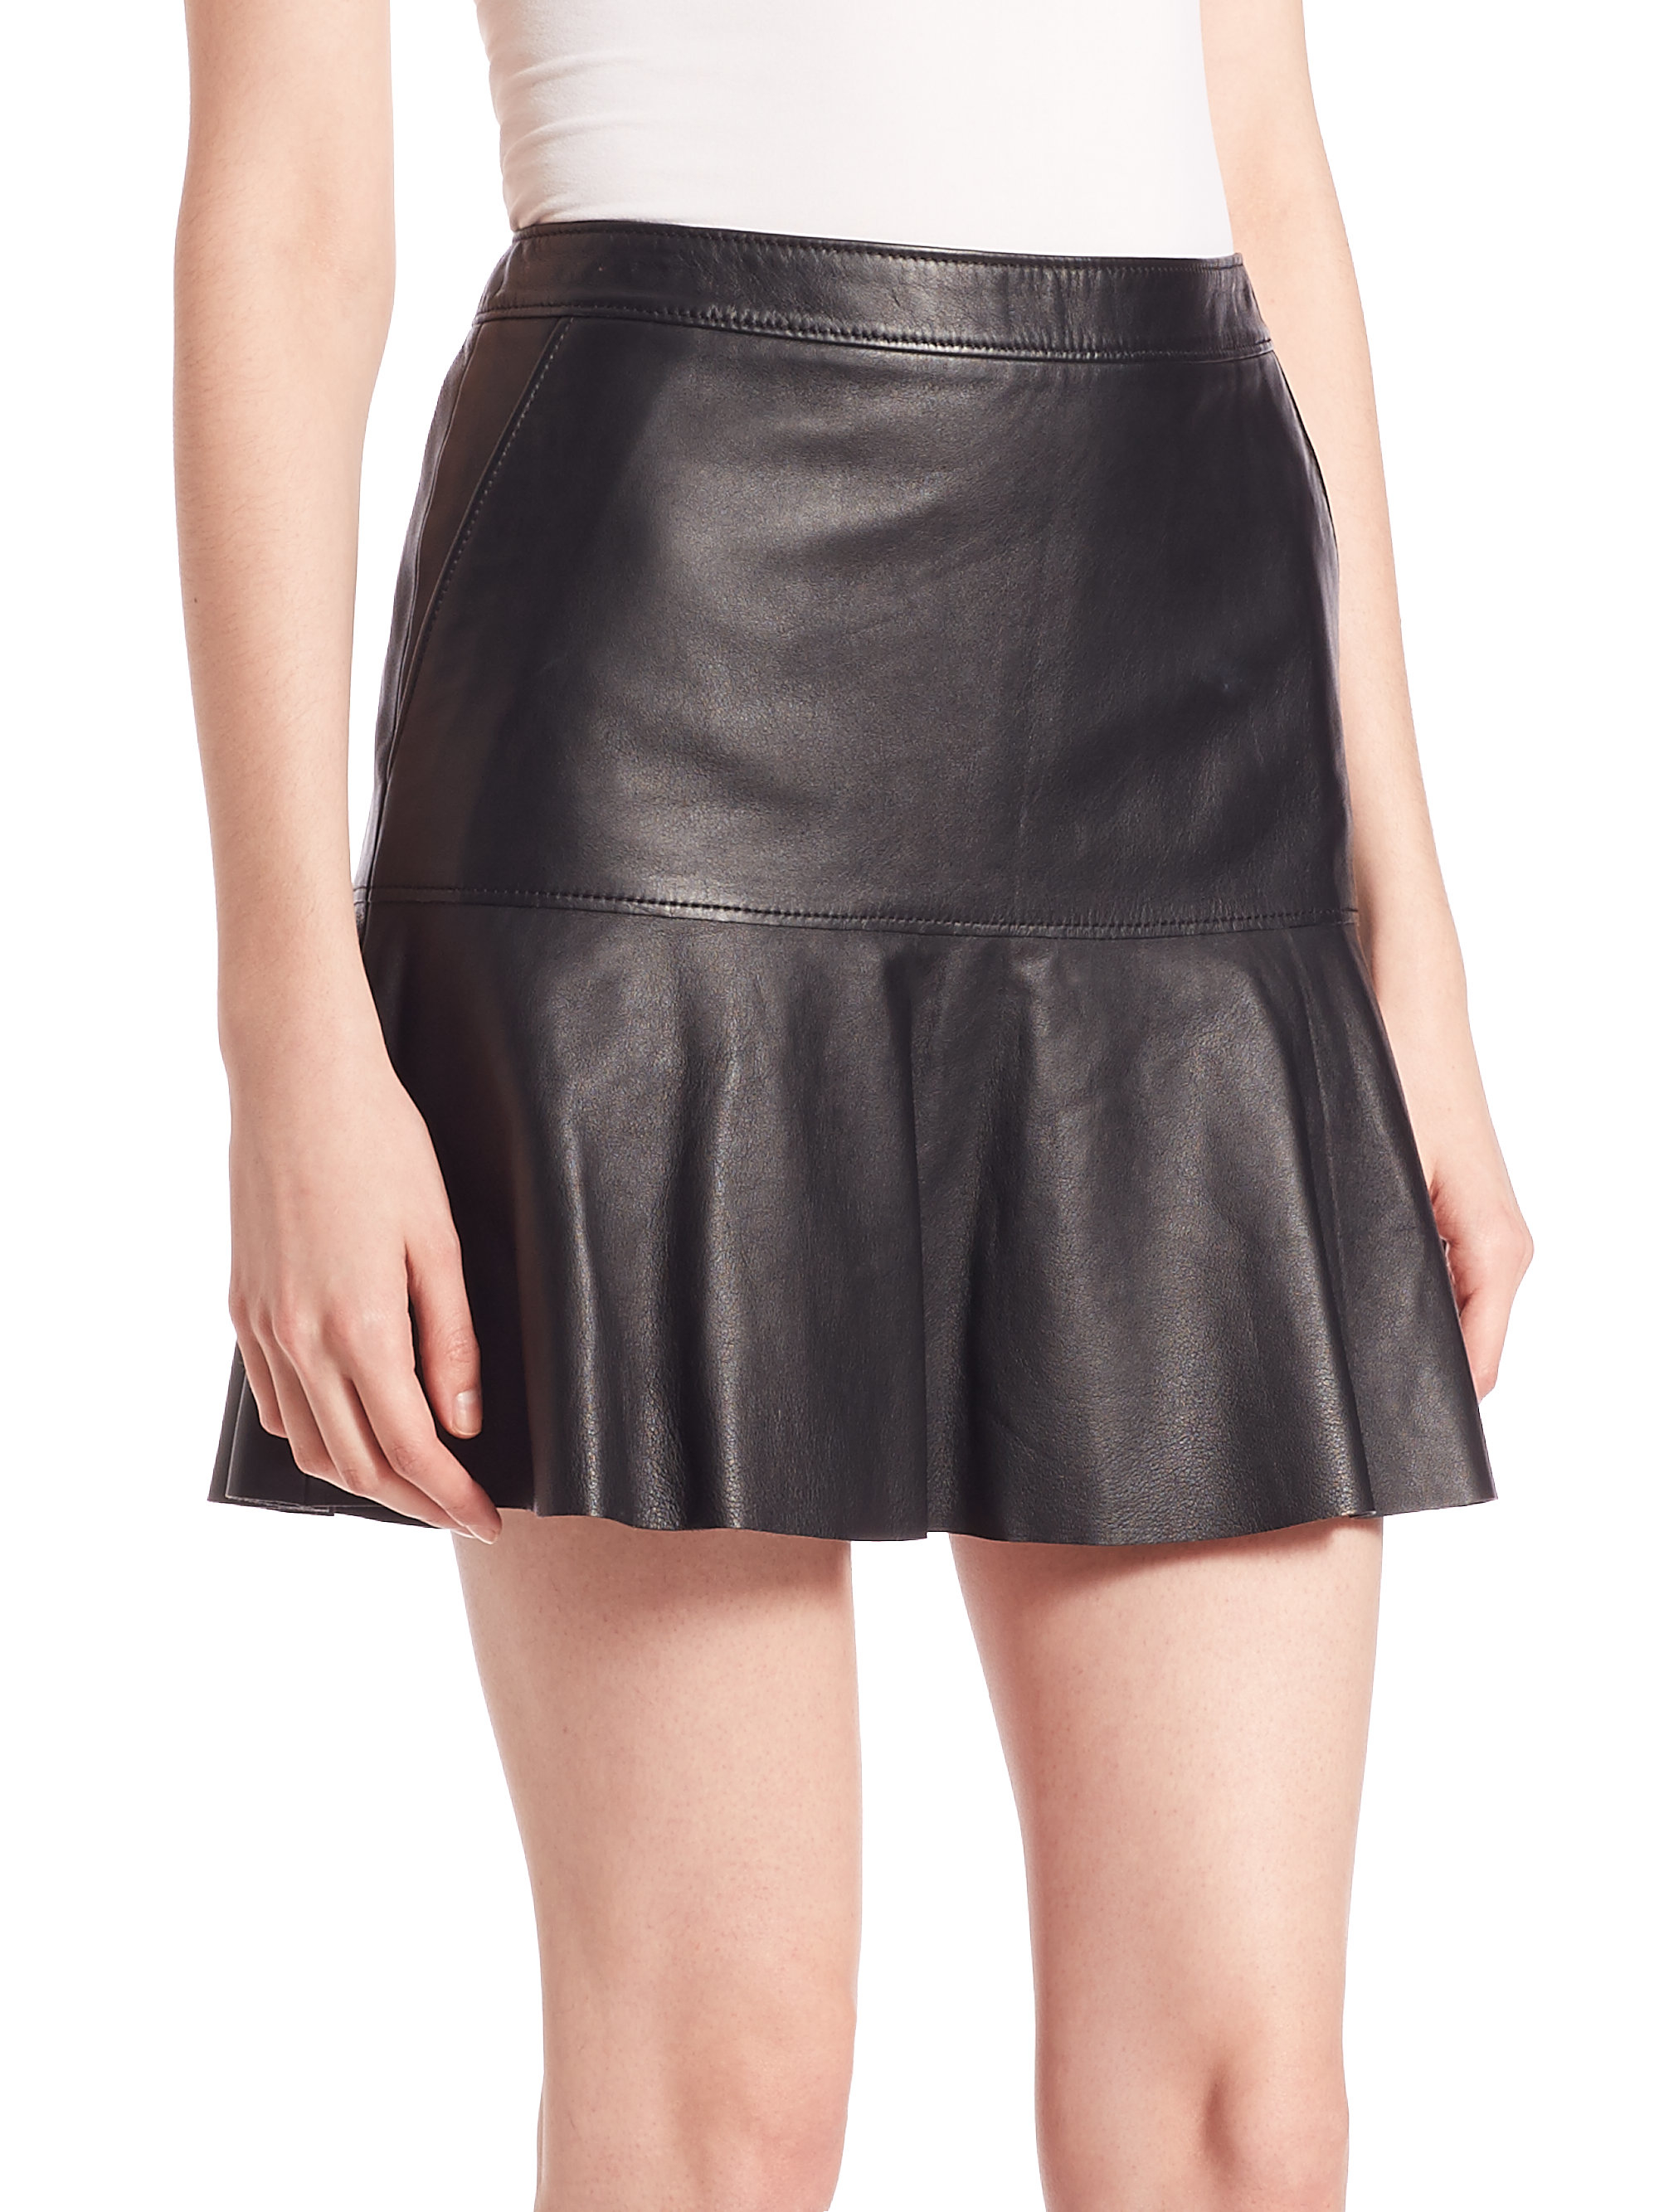 Coach 1941 Black Fluid Leather Mini Skirt